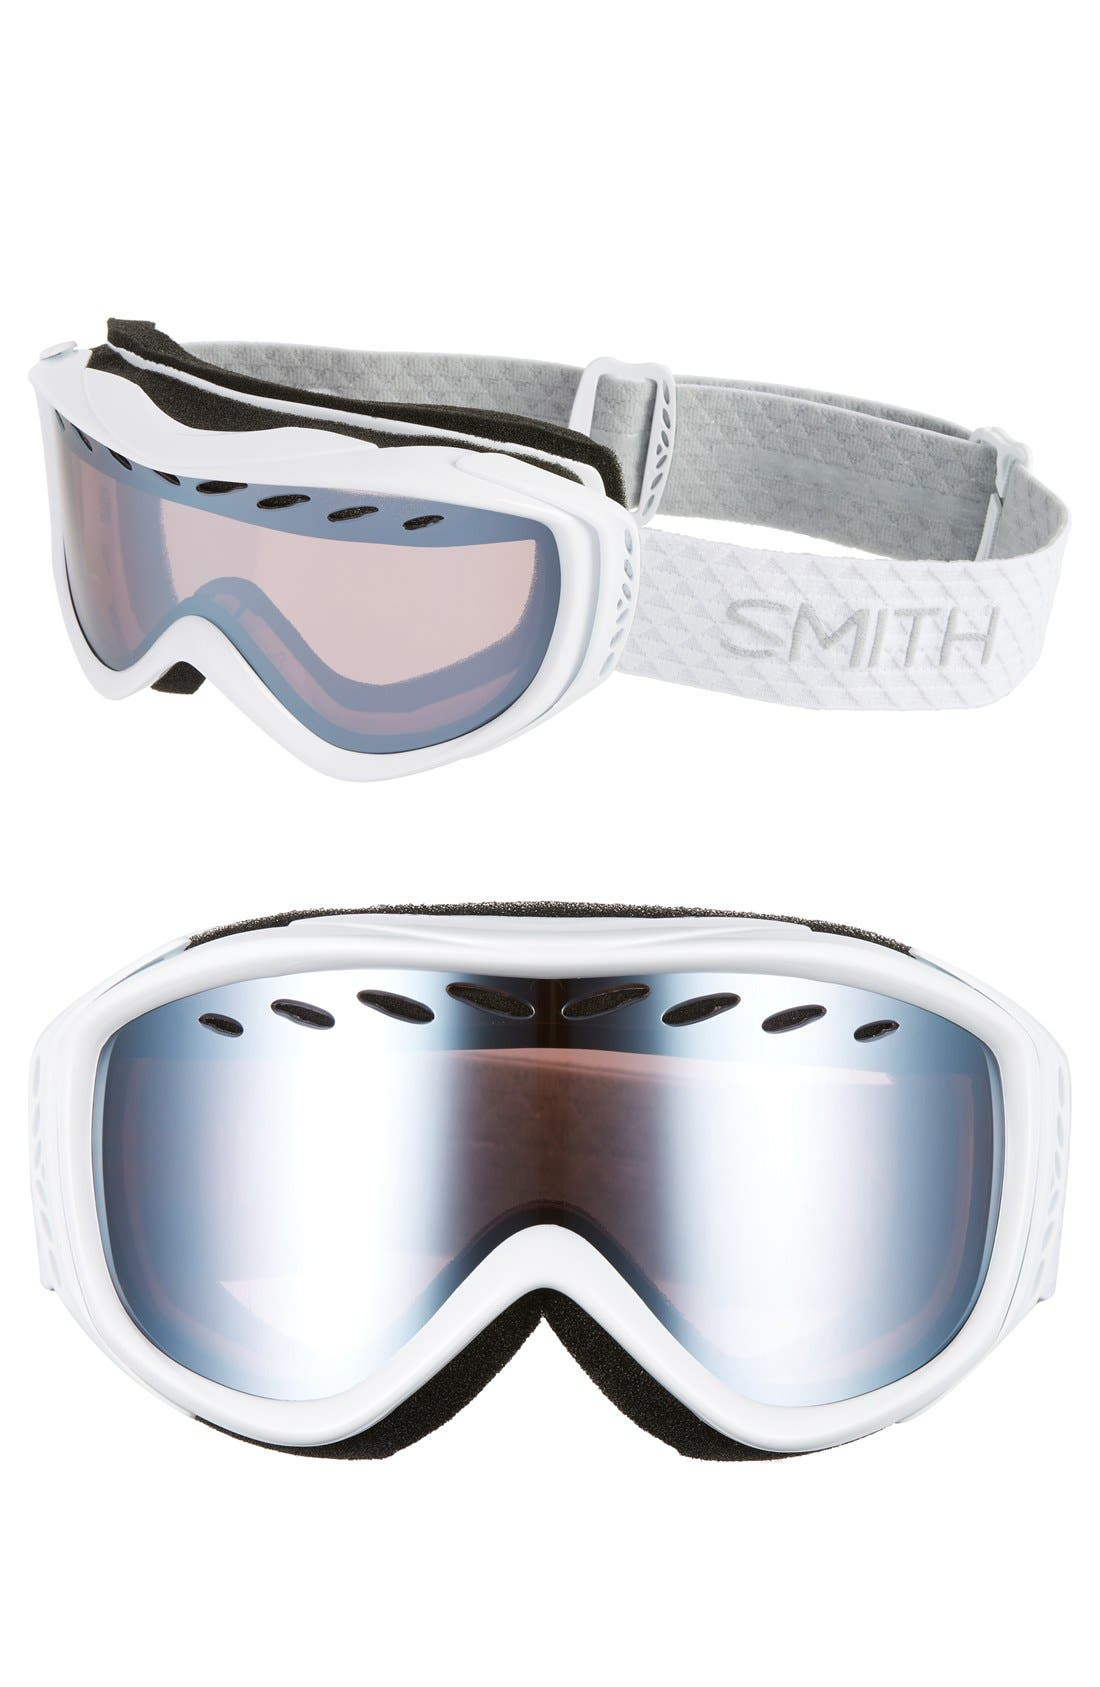 SMITH 'Transit' Snow Goggles, Main, color, 100